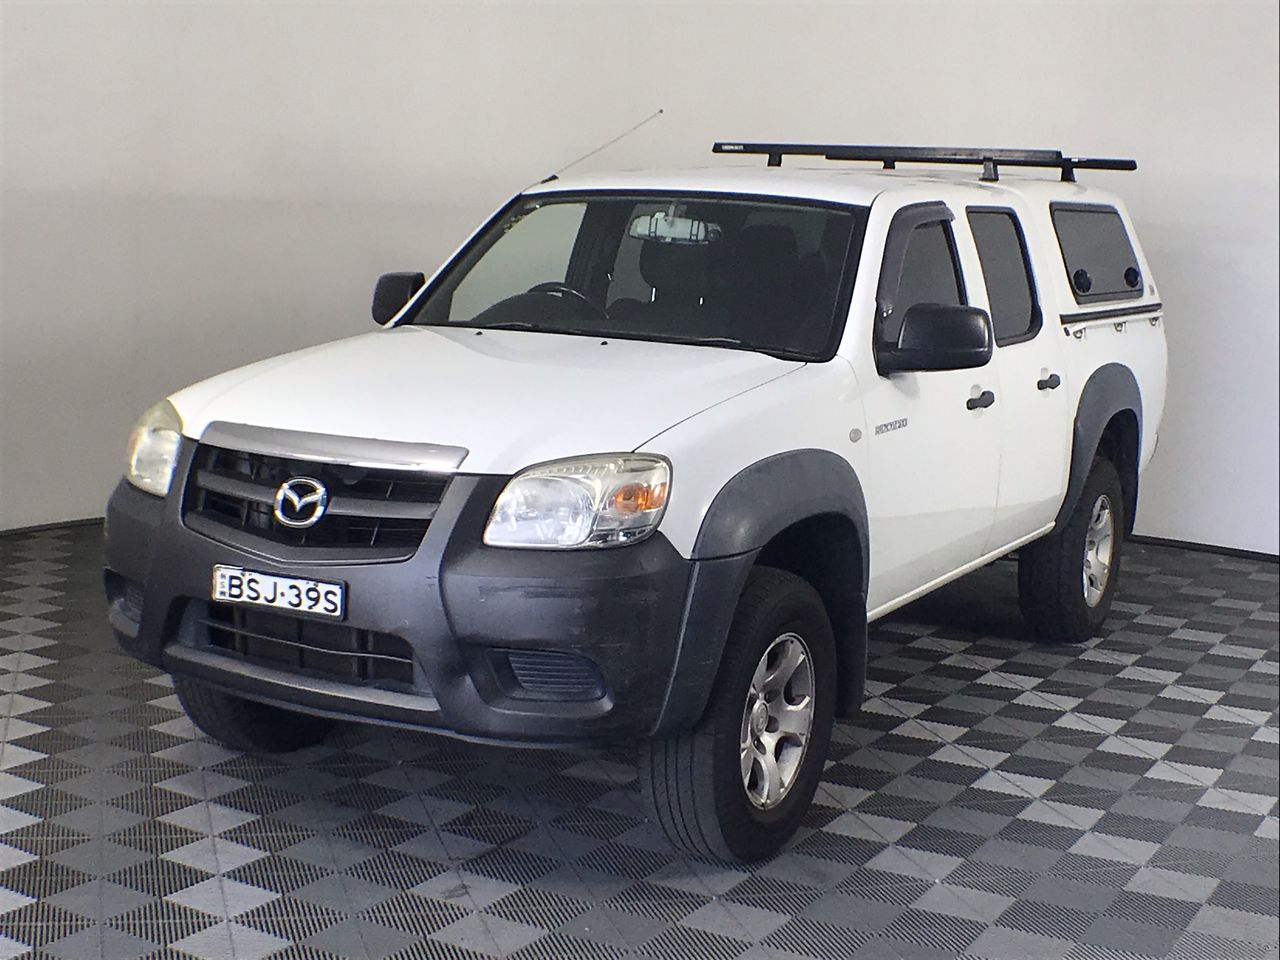 2010 Mazda BT-50 DX B3000 Turbo Diesel Automatic Dual Cab